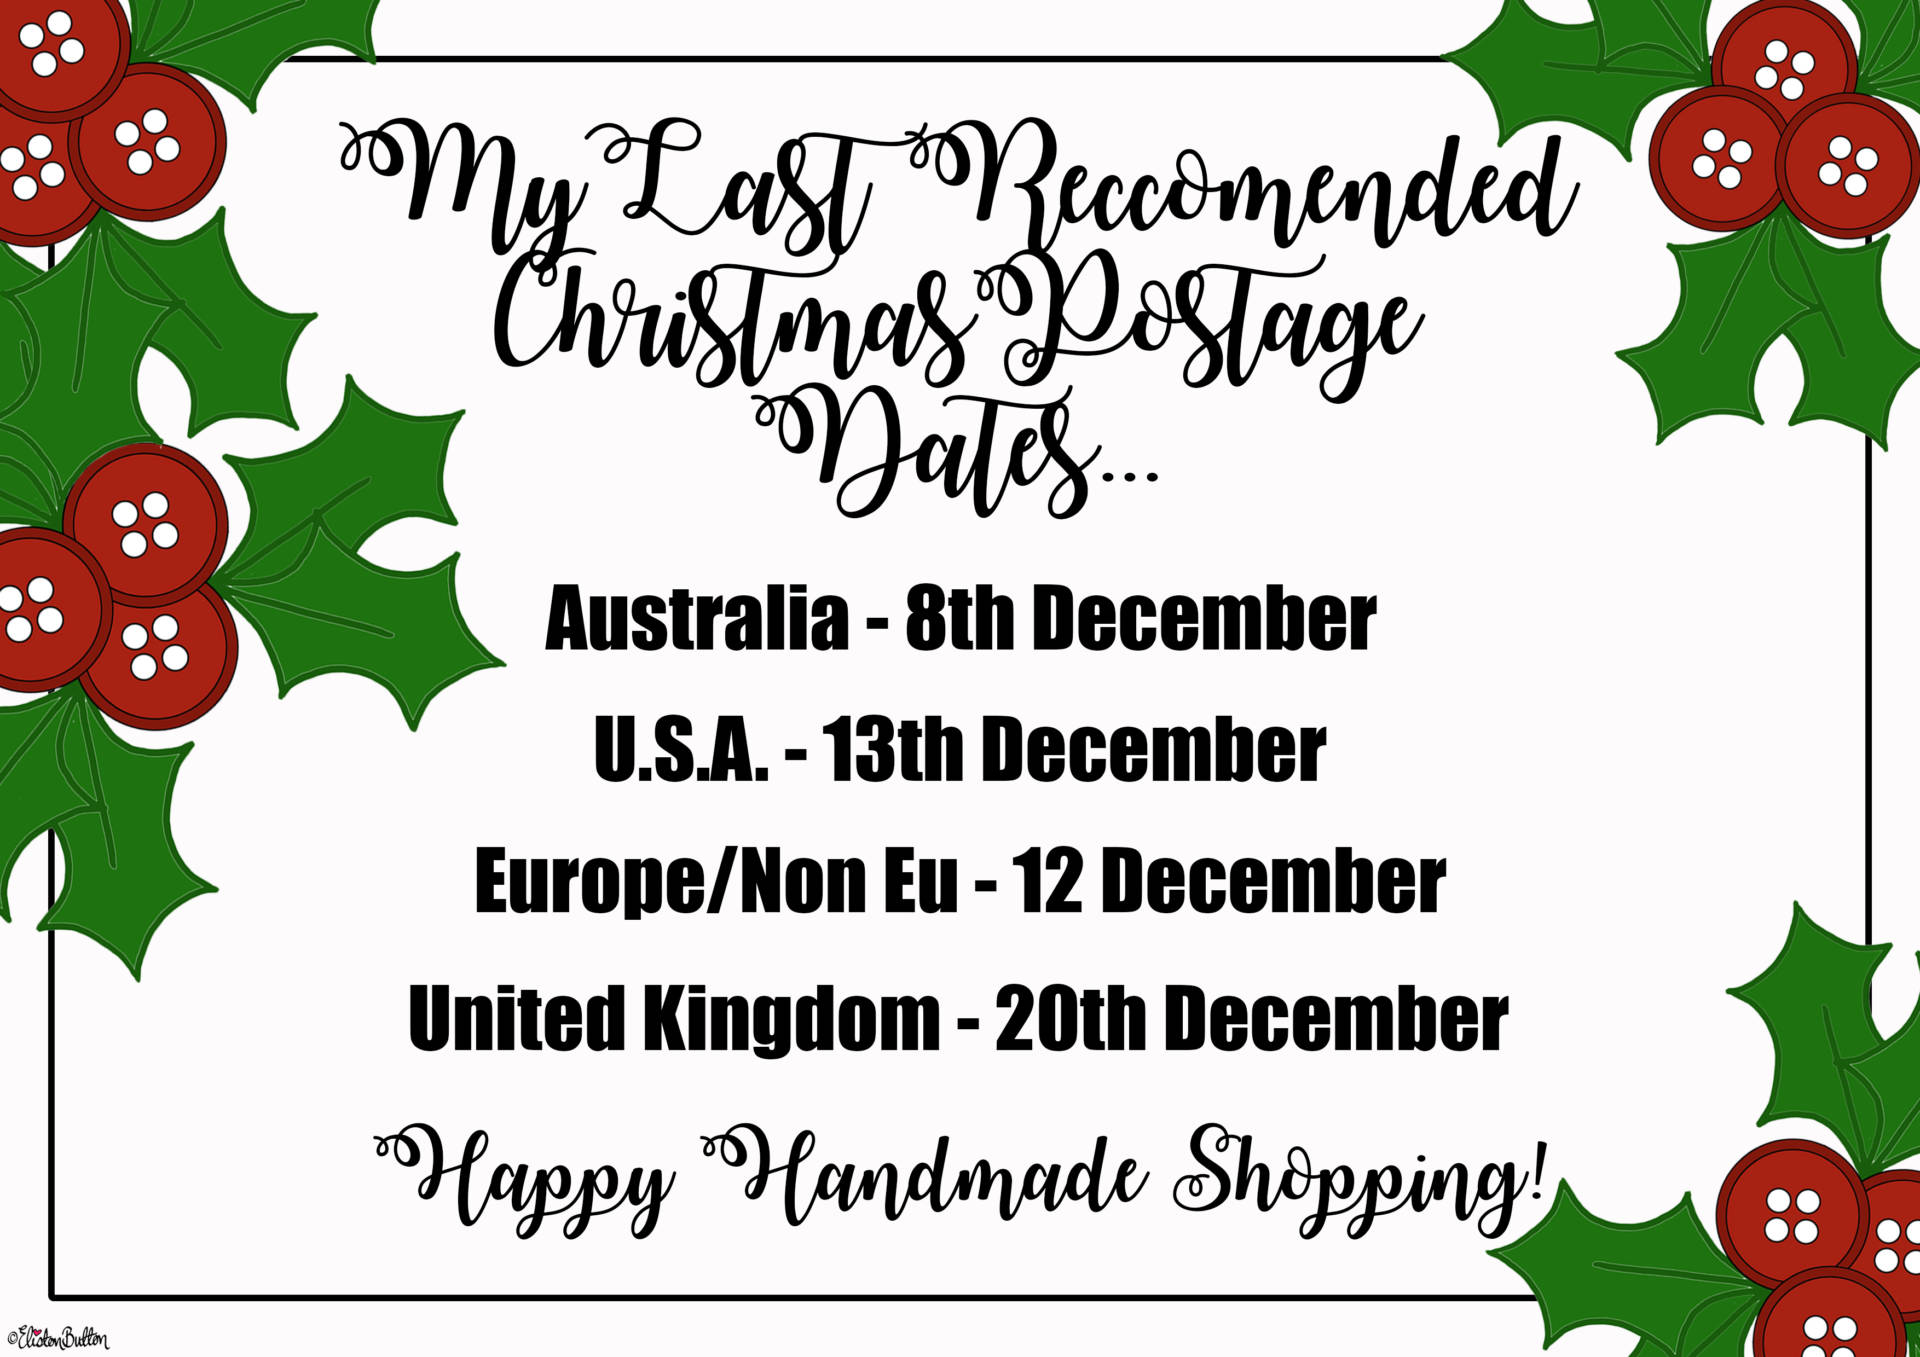 Last Reccomended Postage Dates for the Eliston Button Etsy Shop - Christmas Gift Guide, Last Postage Dates and a Present for You!